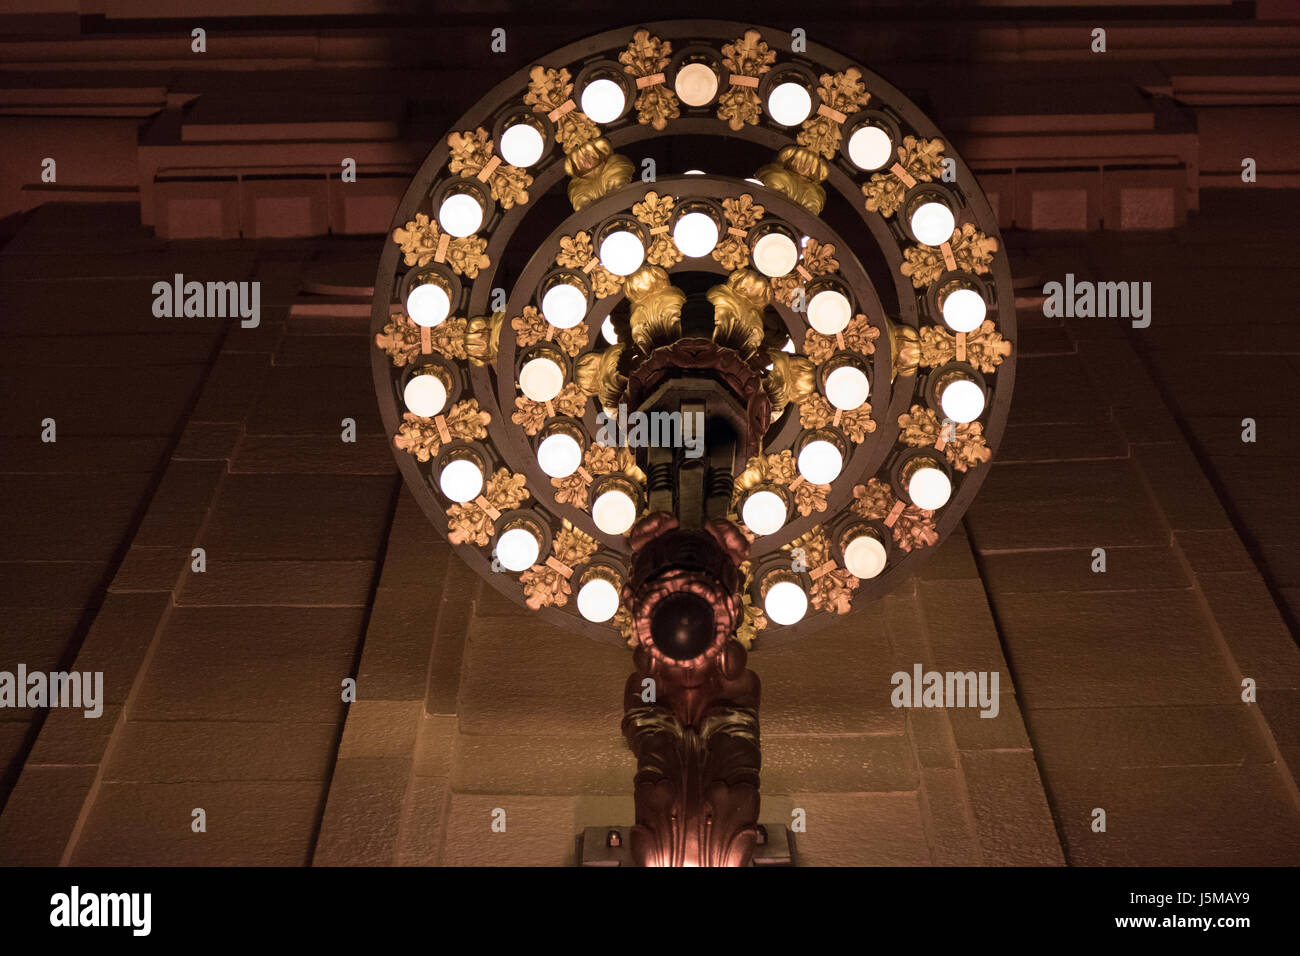 Ornate Early 1900's Union Station Light Fixture - Stock Image